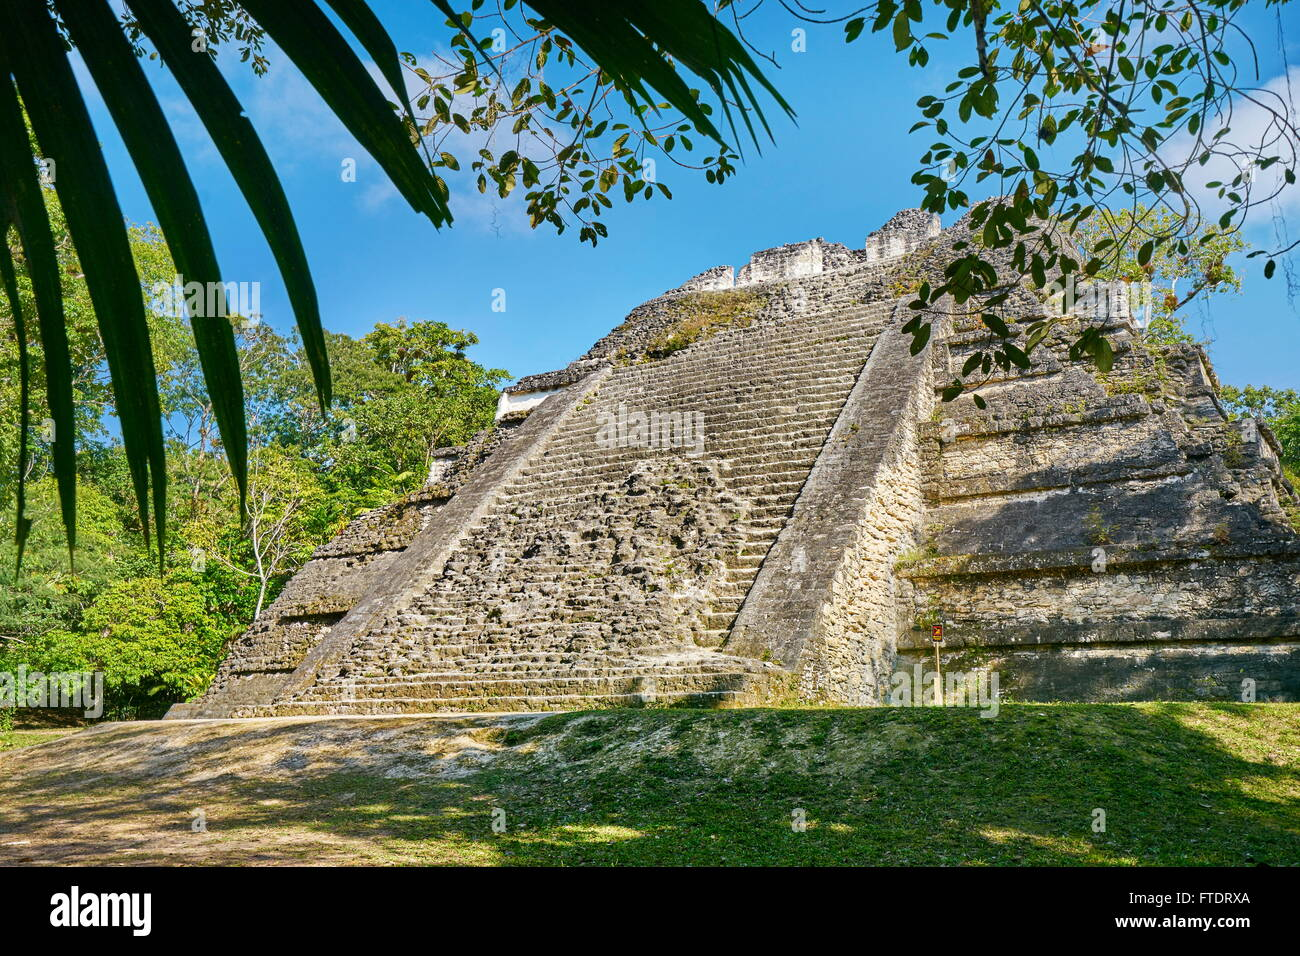 Ancient Maya Ruins, Tikal National Park, Yucatan, Guatemala Stock Photo